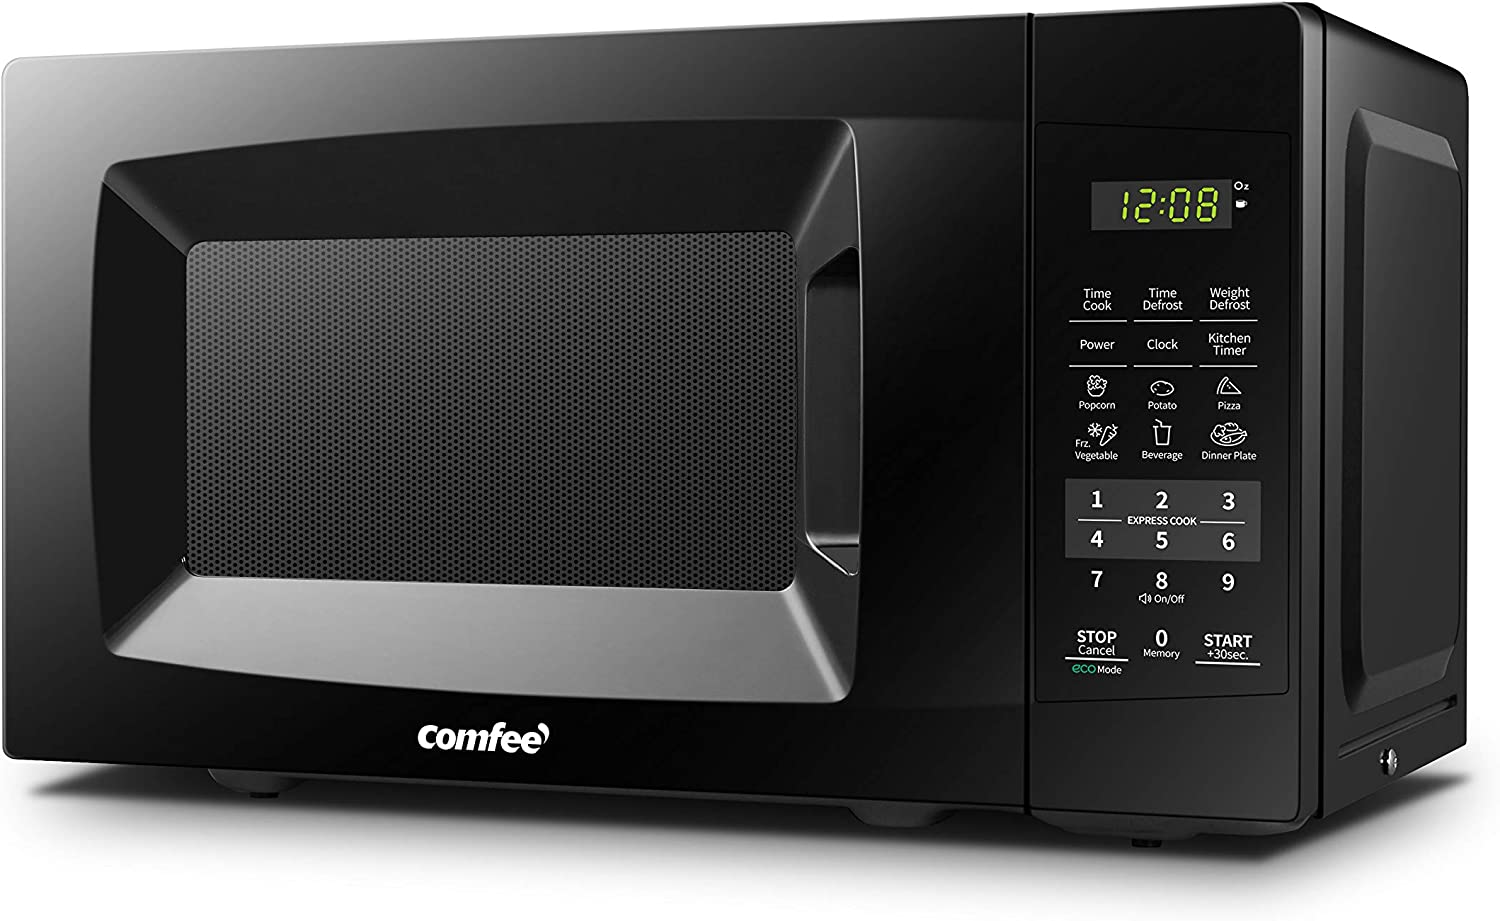 COMFEE EM720CPL-PMB Countertop Microwave Oven with Sound On/Off, ECO Mode and Easy One-Touch Buttons, 0.7cu.ft, 700W, Black